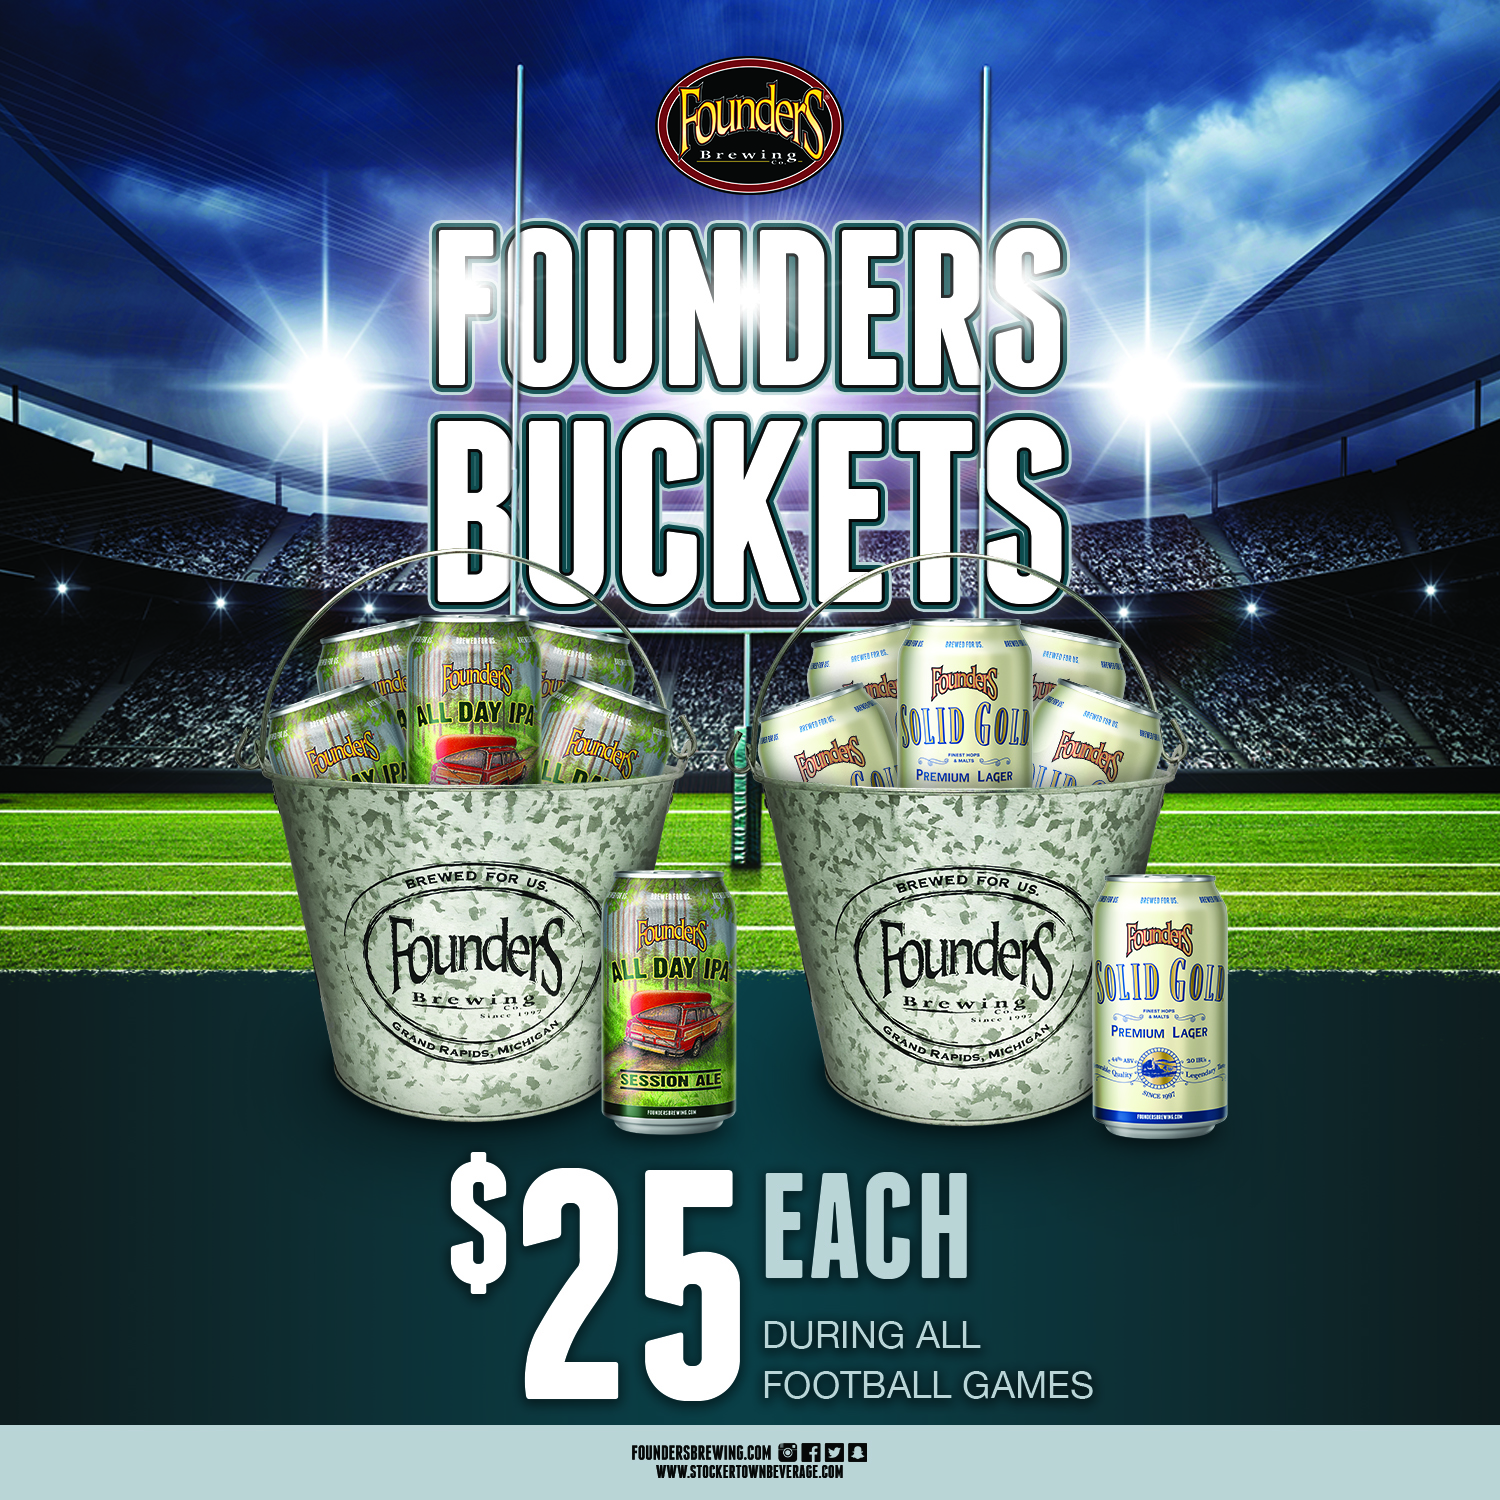 Founders Football Bucket Special All Day AND Solid Gold social flat